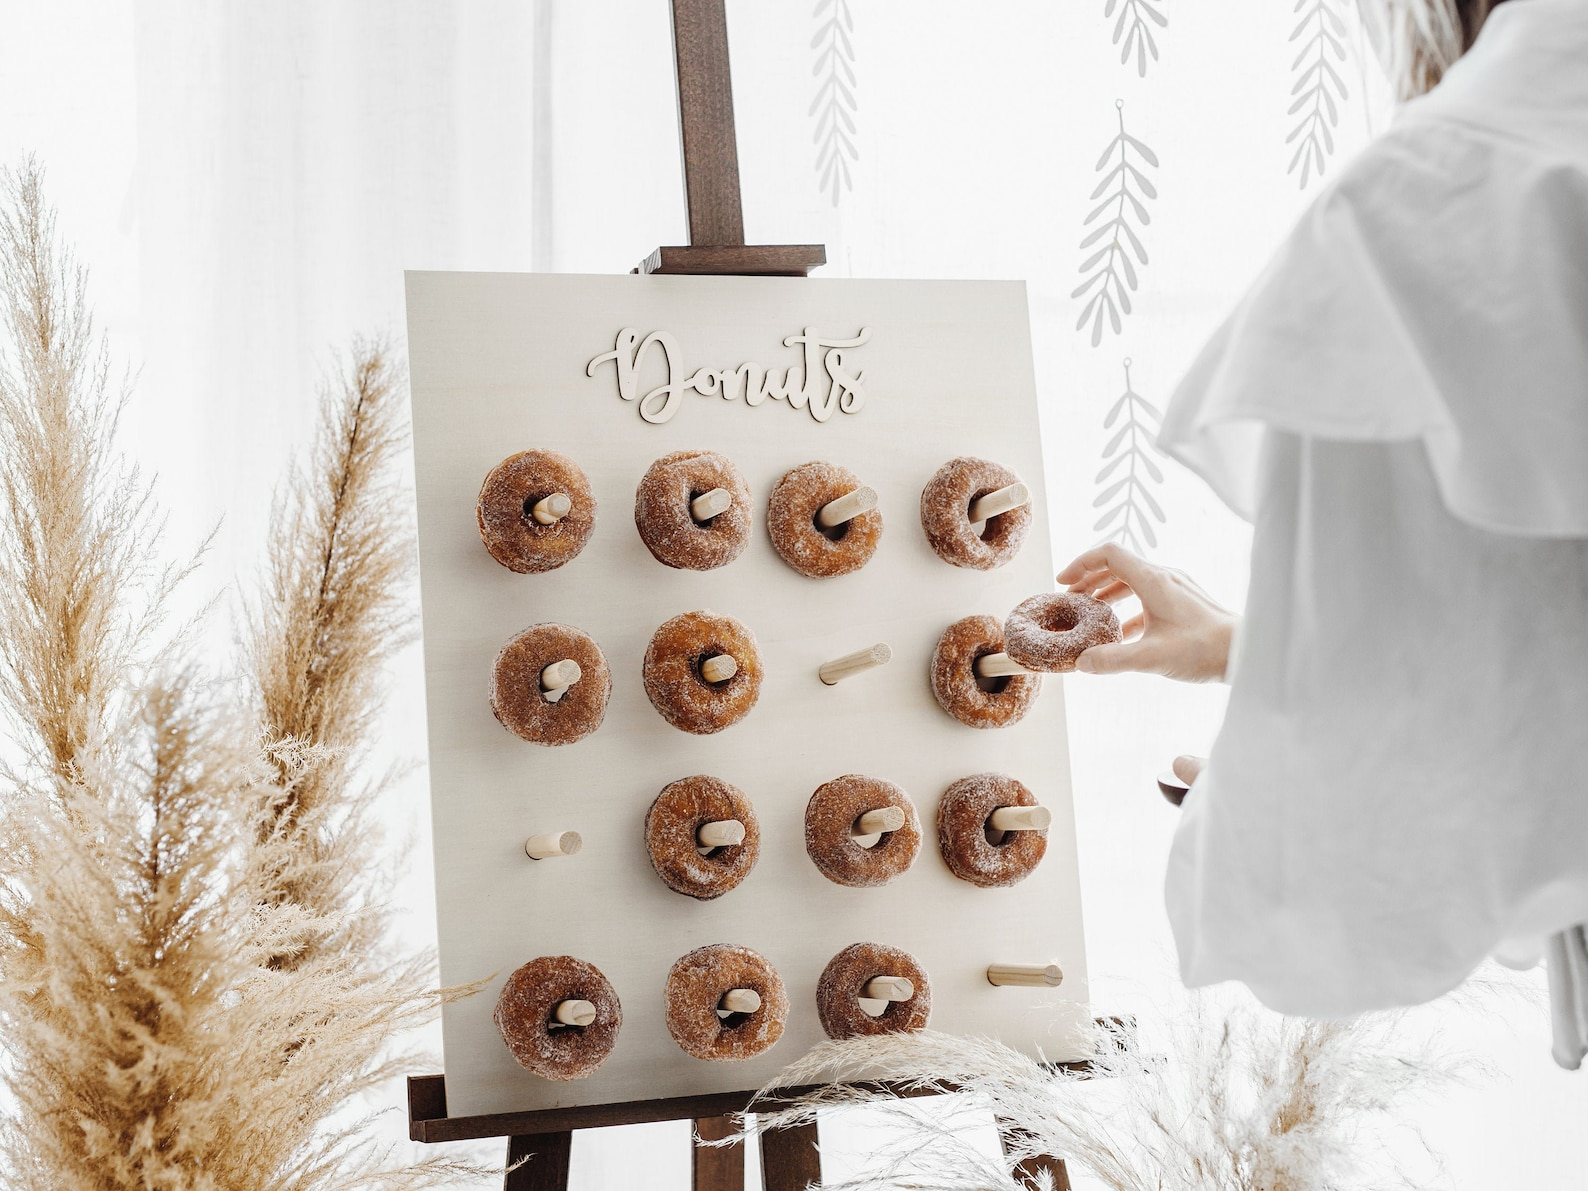 Donut wall for the reception